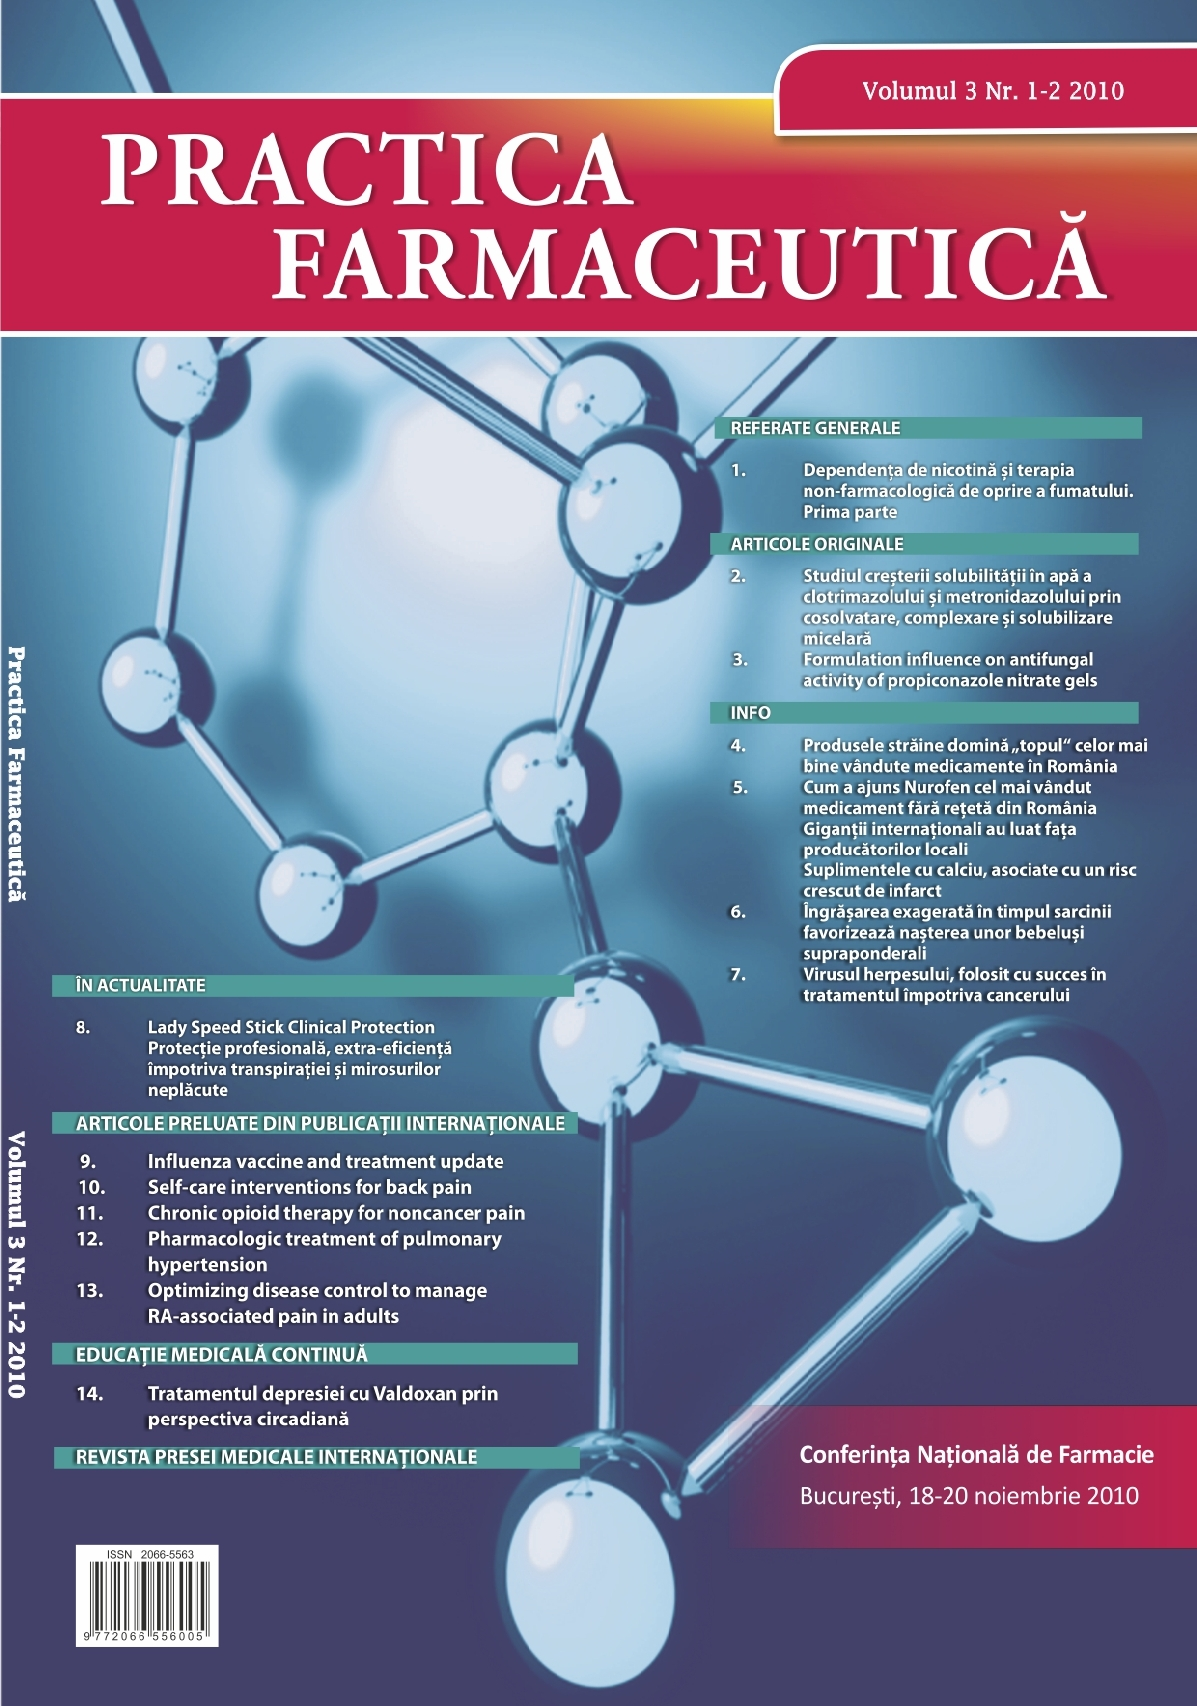 Revista Practica Farmaceutica, Vol. 3, Nr. 1-2 (5-6), 2010